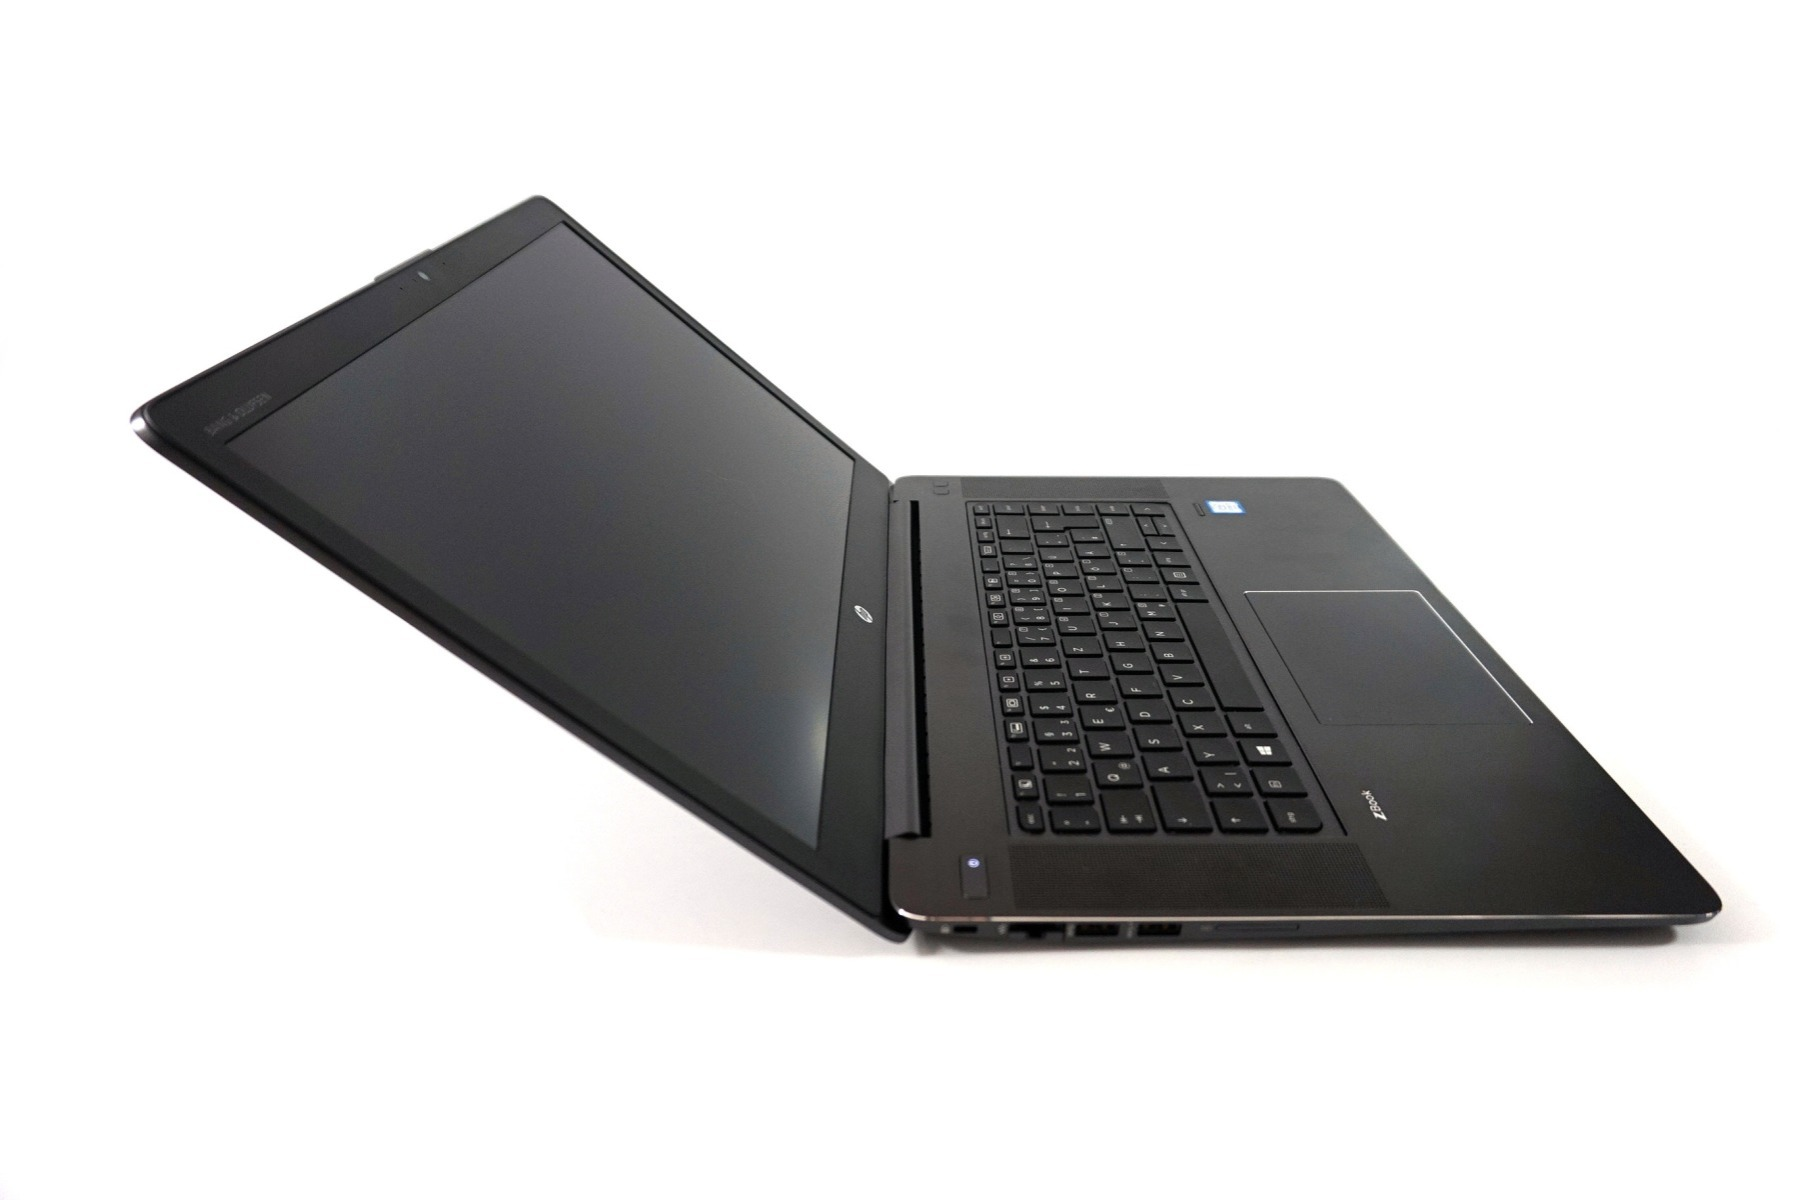 "HP ZBook 15 Studio G3 MOBILE WORKSTATION 15.6"" i5-6300HQ 8/128 SSD/W10P/1920x1080, Коричневий"